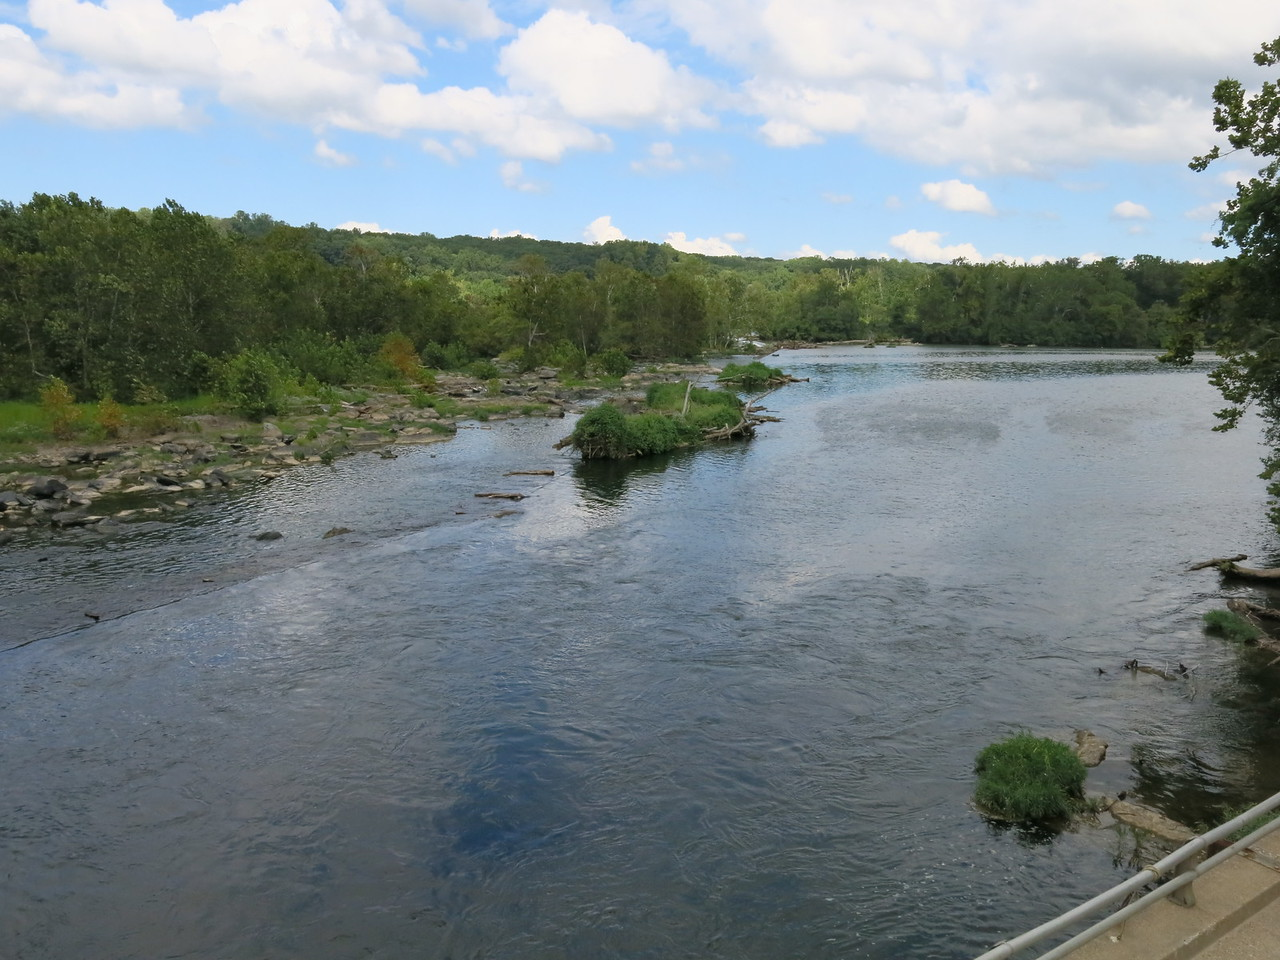 Relatively calm river above the Great Falls